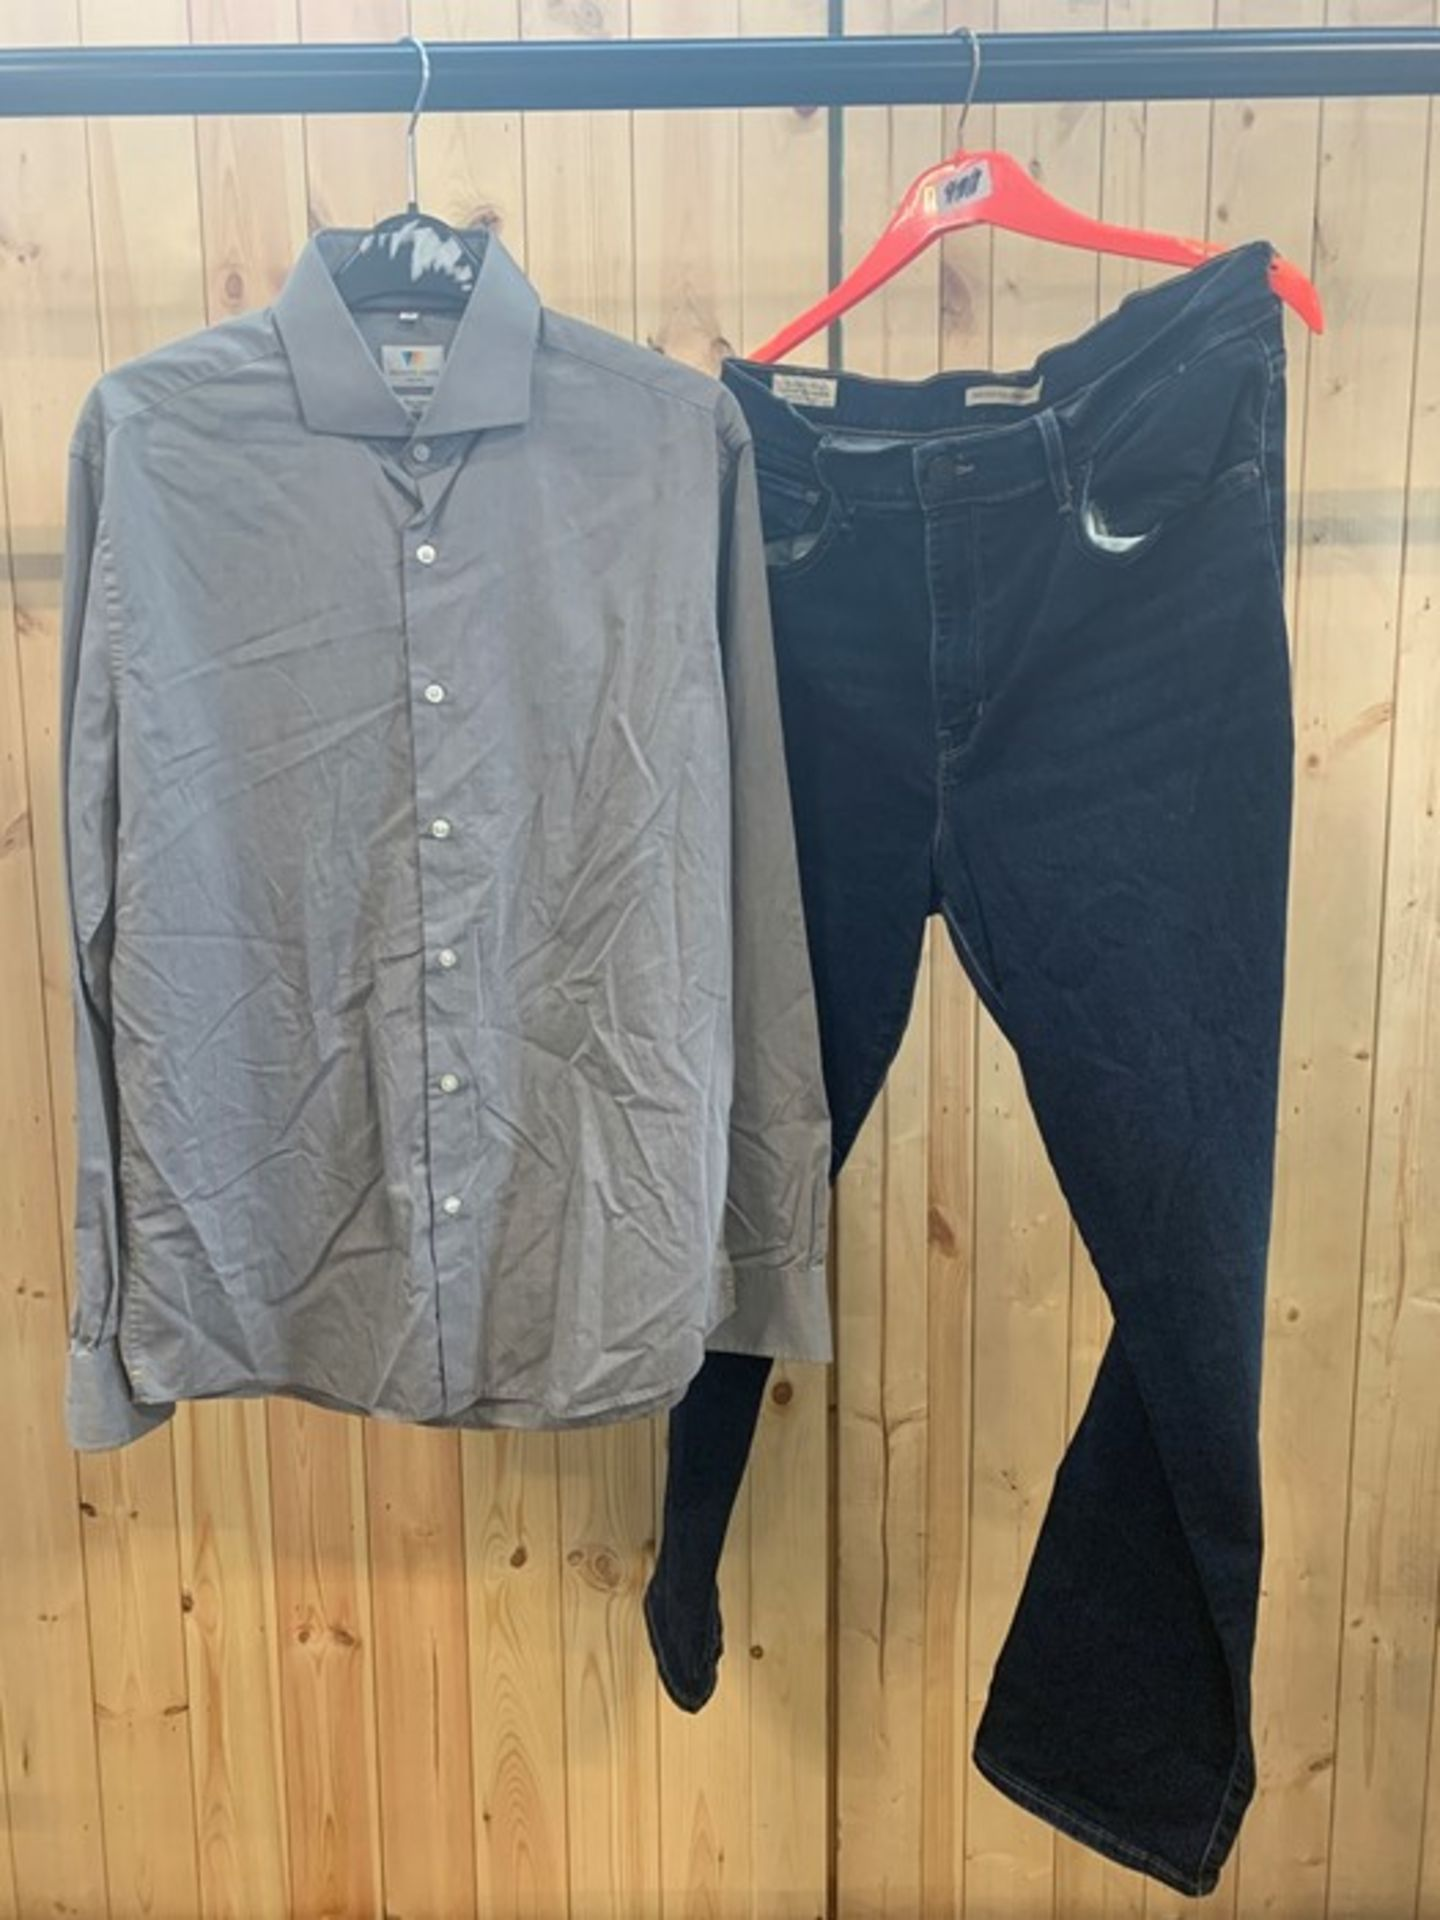 Lot 672 - 1 LOT TO CONTAIN 2 PIECES OF BRANDED MENS CLOTHING / BRANDS INCLUDE LEVI'S PREMIUM AND RICHARD JAMES